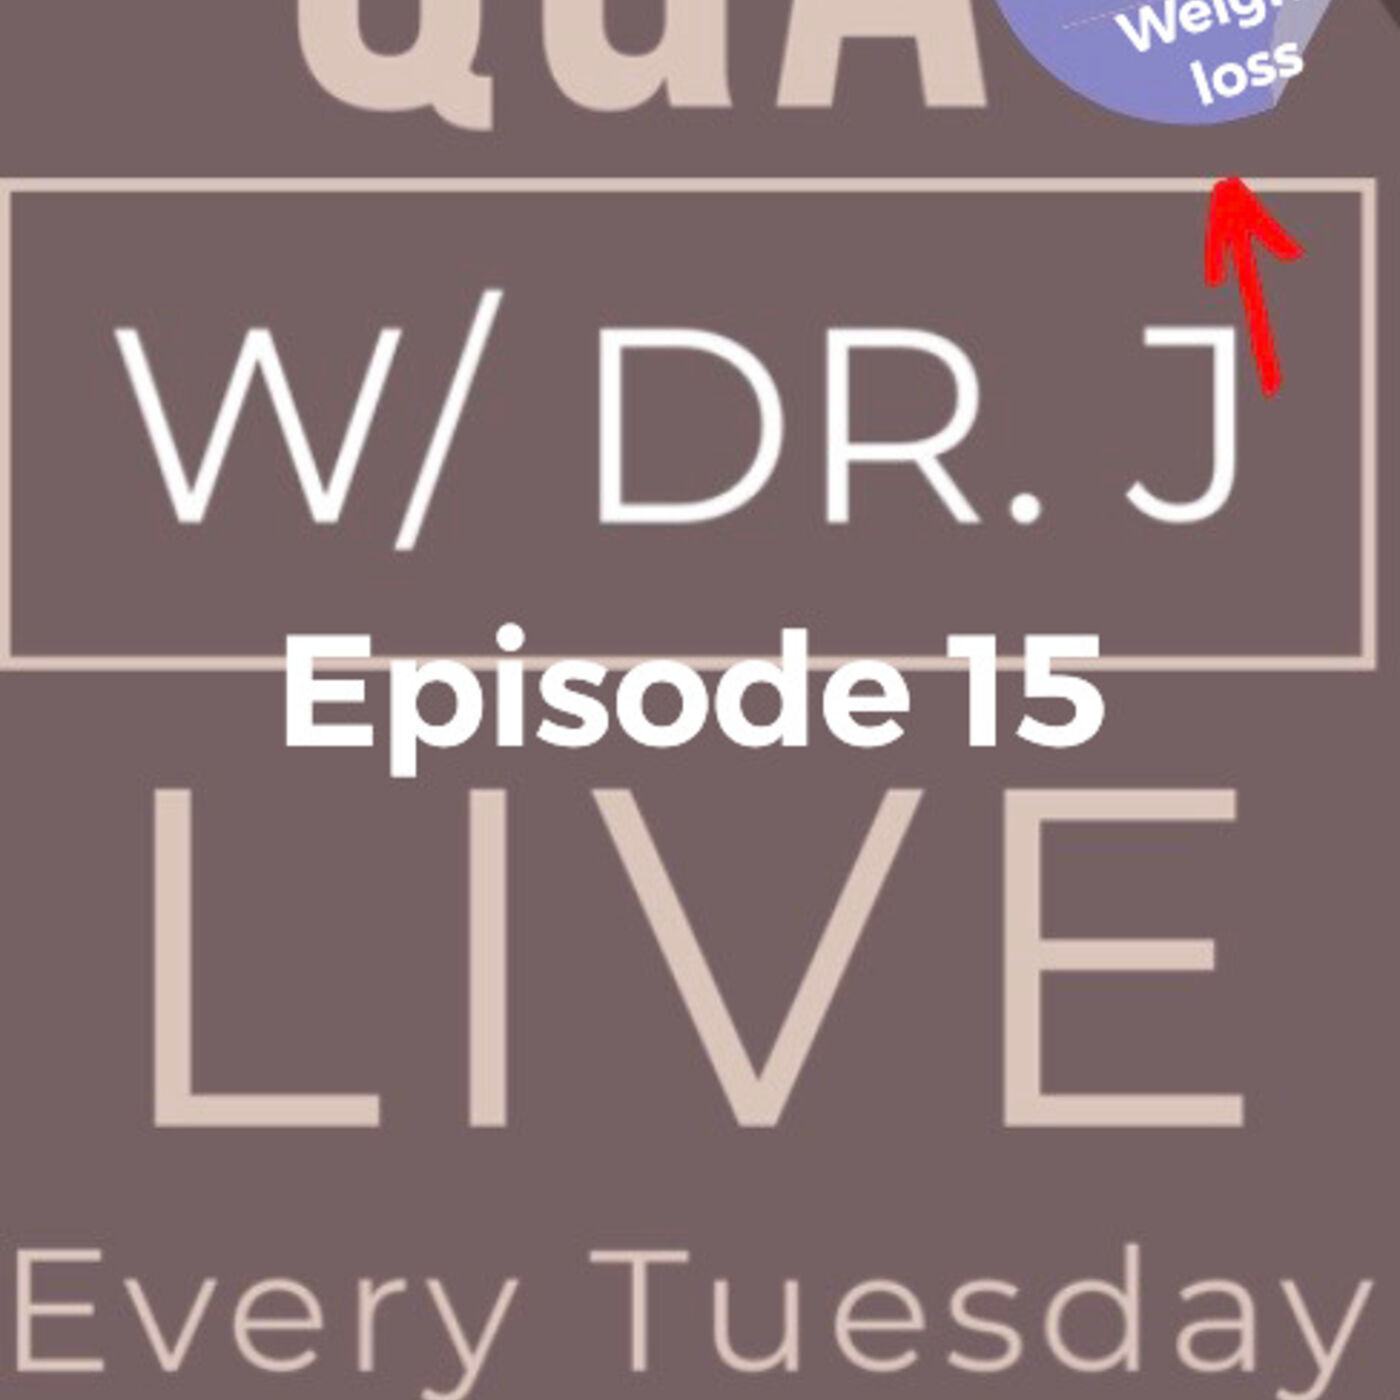 EP 15 Q&A with Dr. Jeneby |  Procedures after Massive Weight Loss !